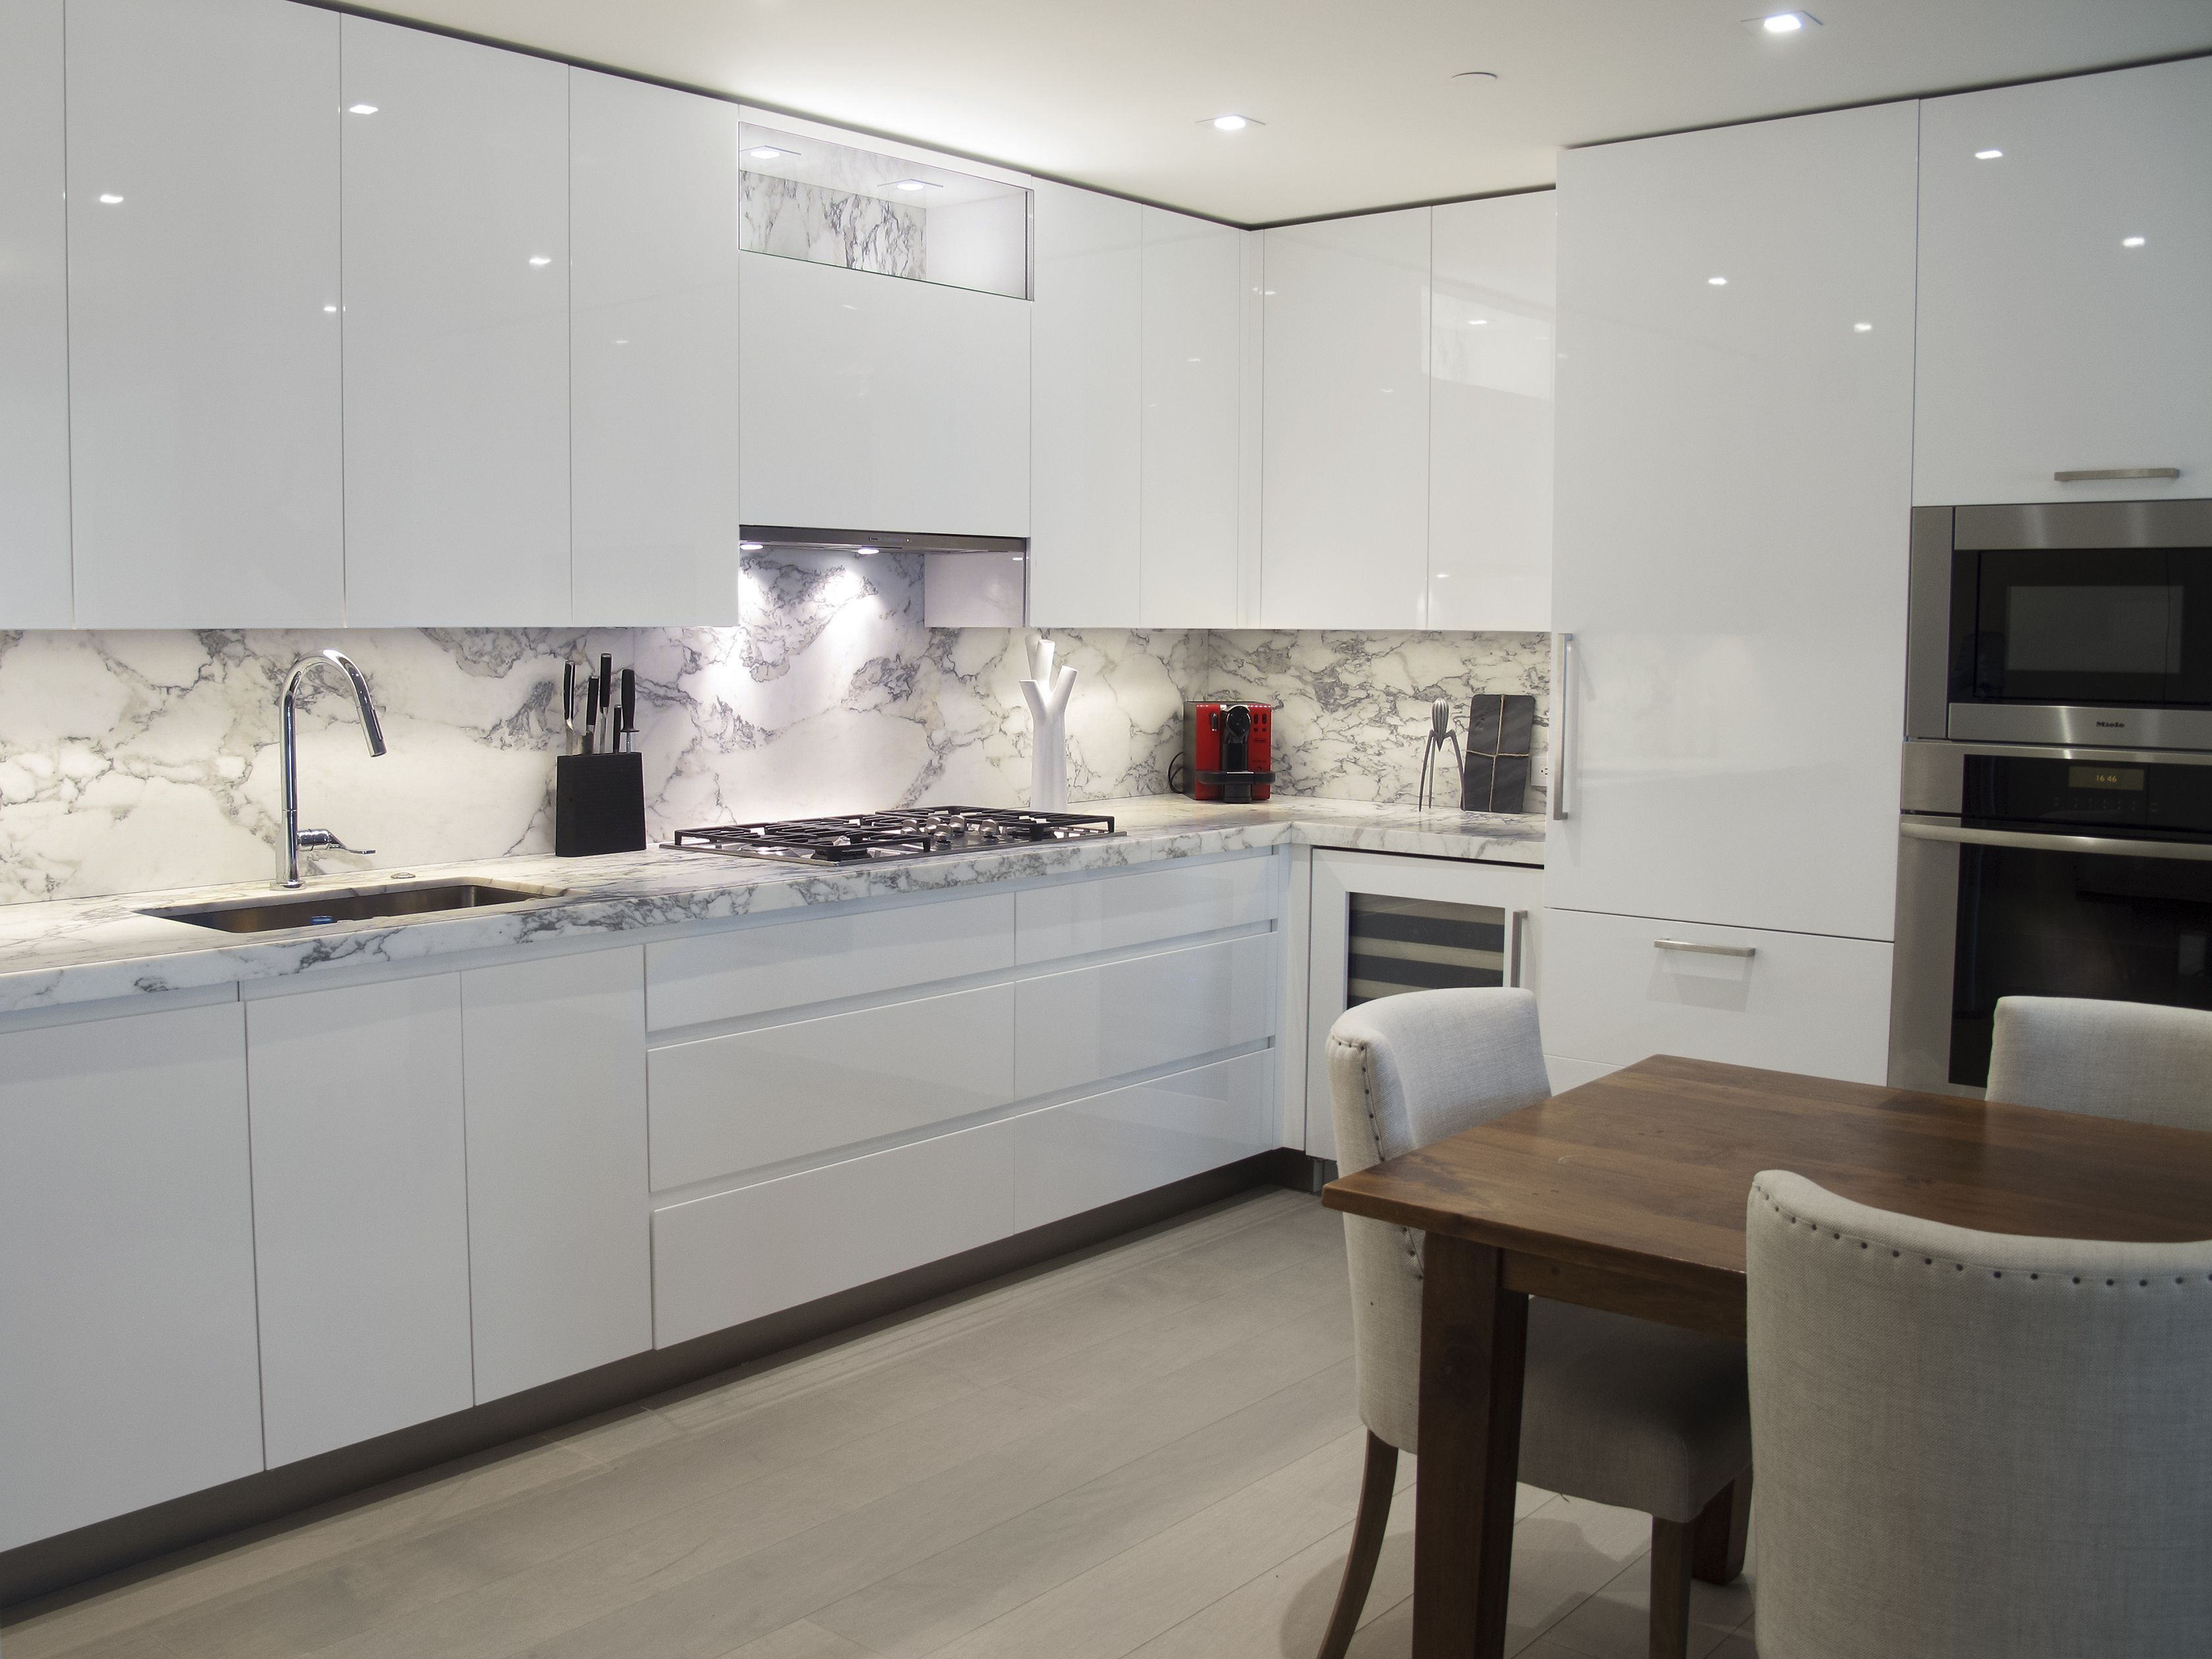 Image Result For White Gloss Cabinets With Marble Backsplash White Gloss Kitchen Kitchen Cabinets Without Handles Gloss Kitchen Cabinets